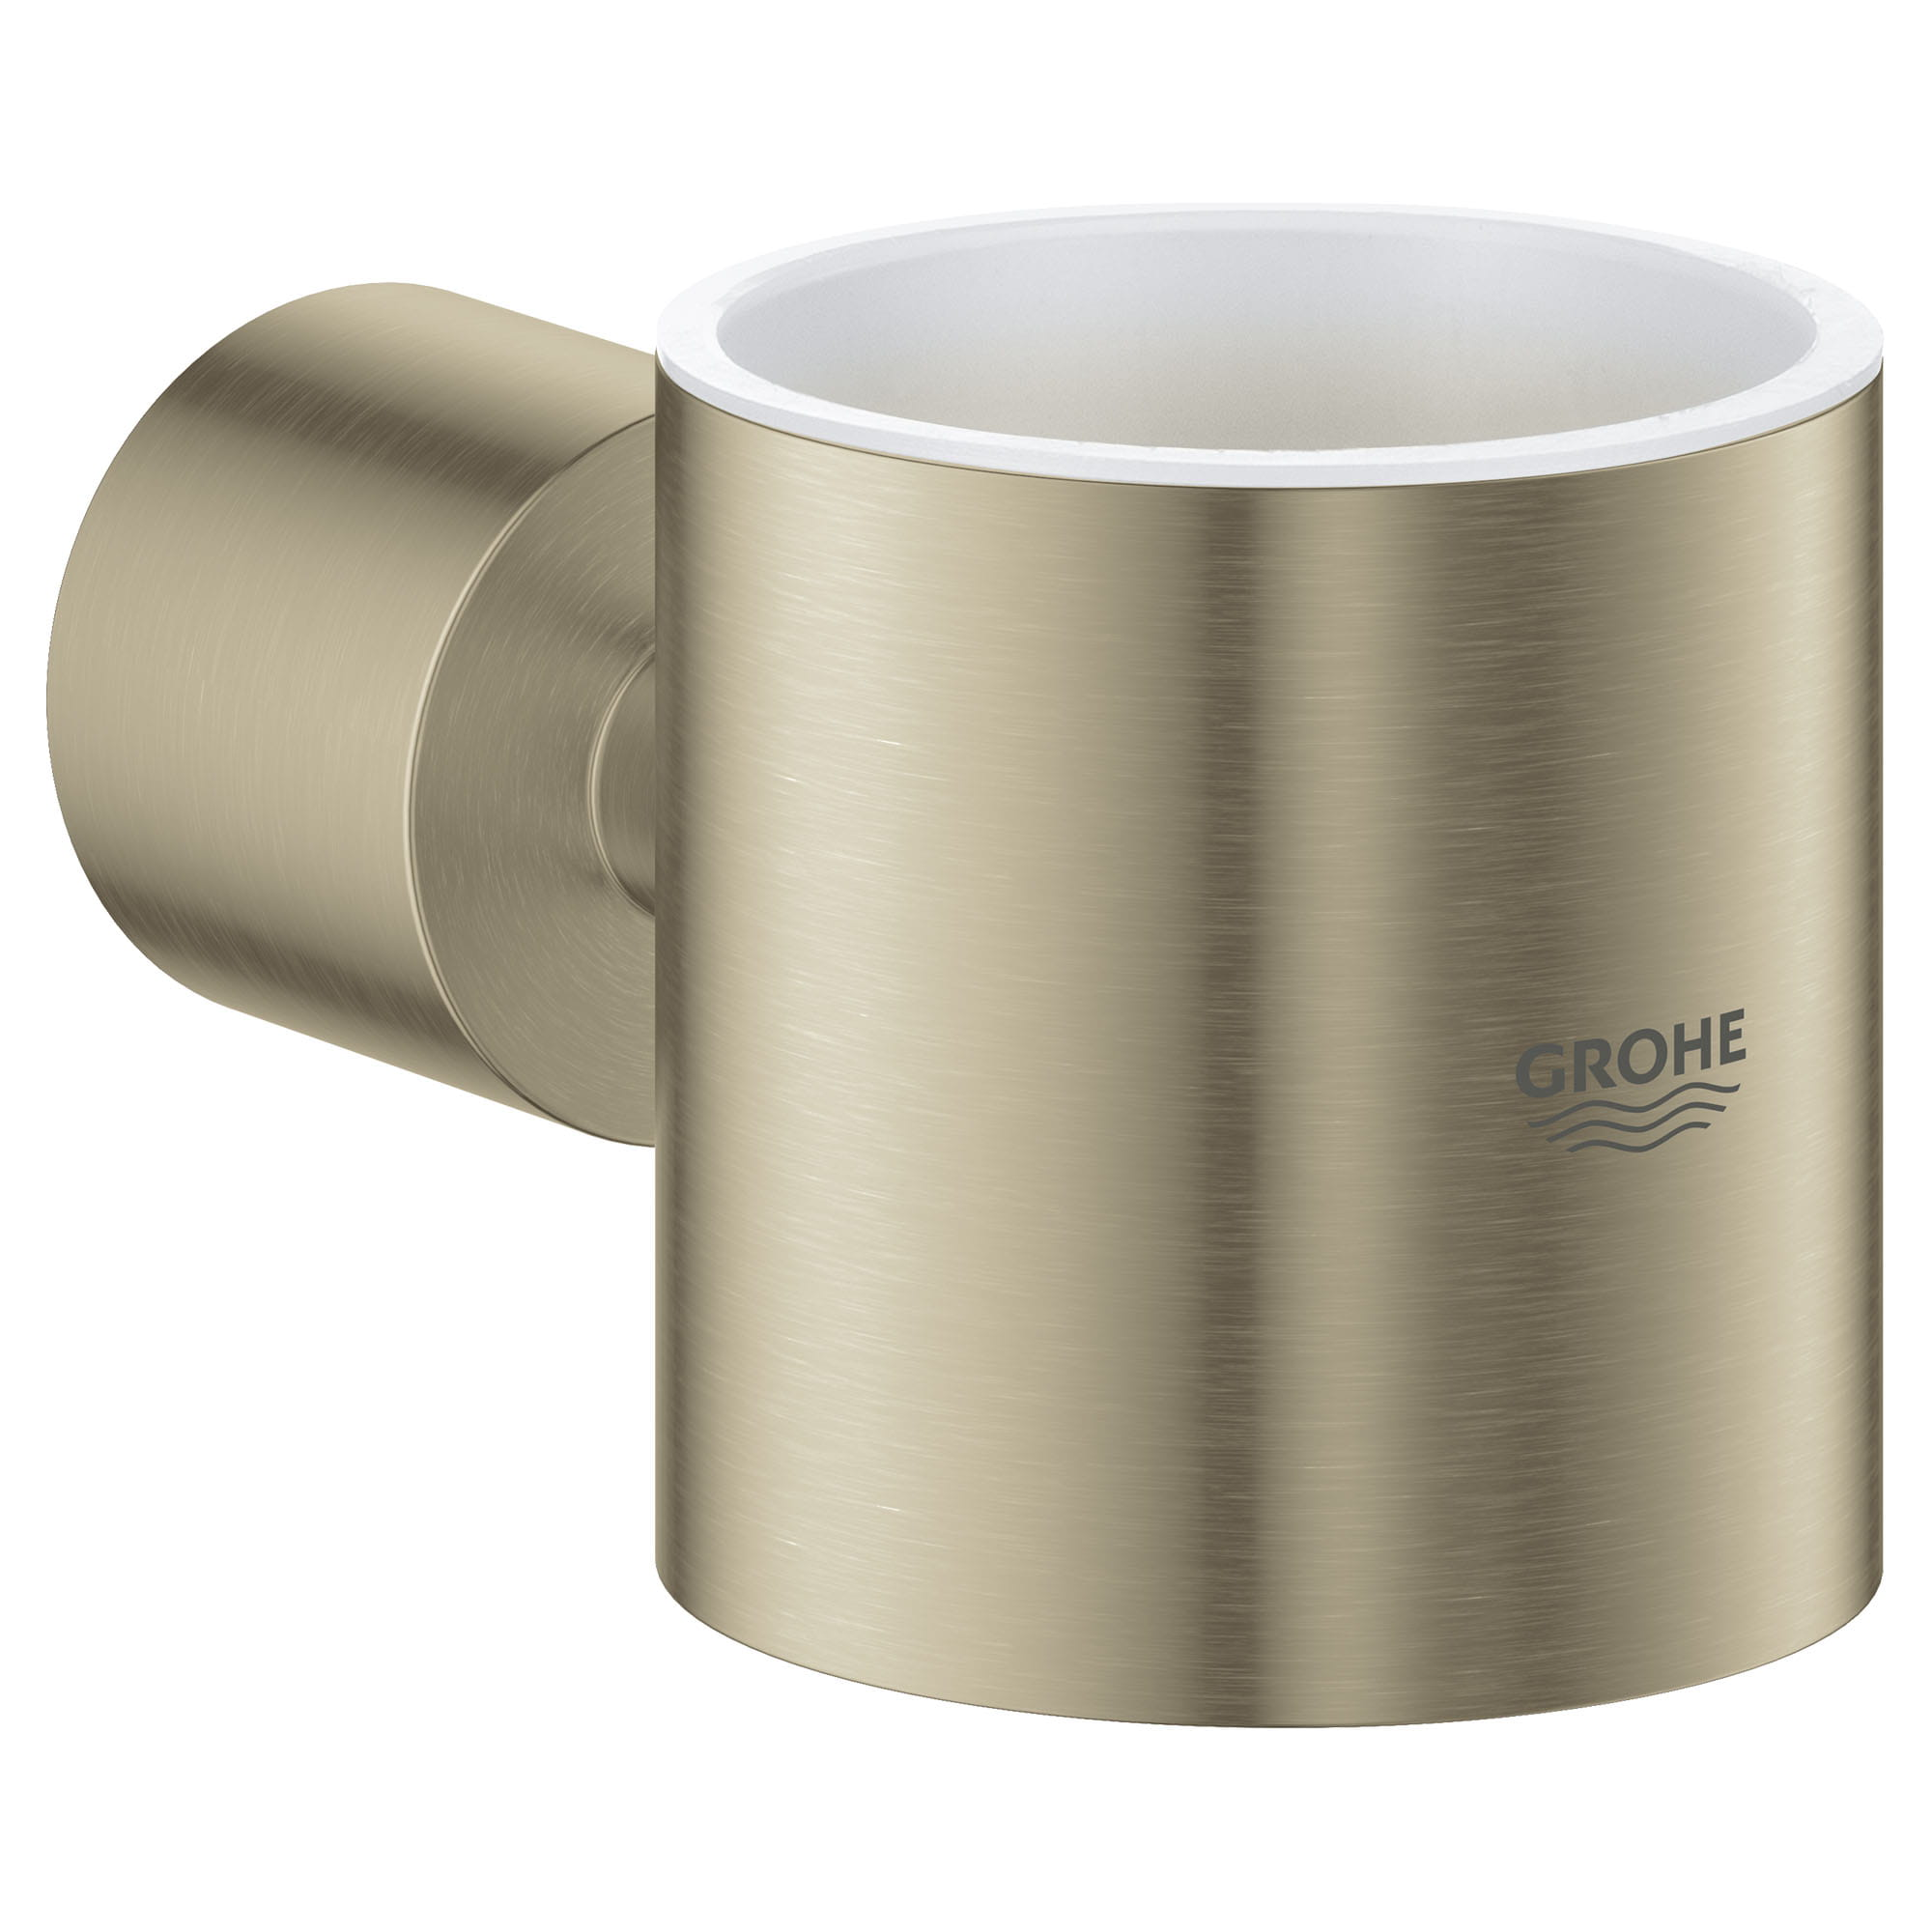 Support pour gobelet GROHE BRUSHED NICKEL